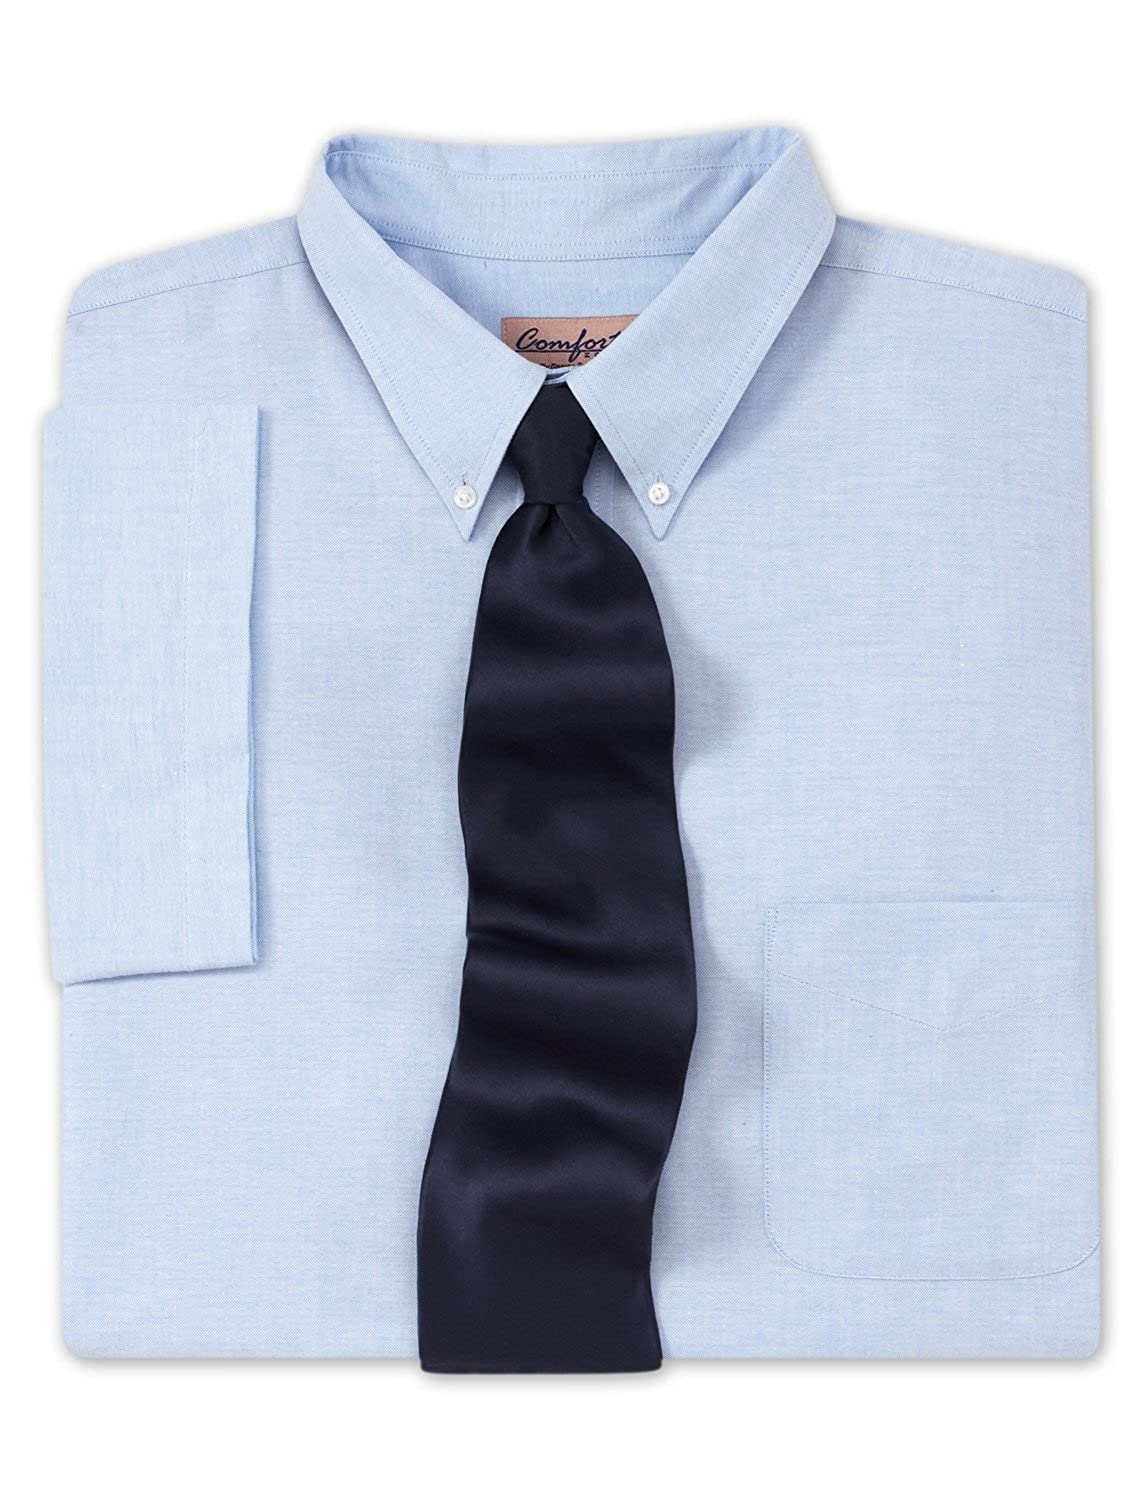 Cheap Polo Ralph Lauren Dress Shirts Chad Crowley Productions